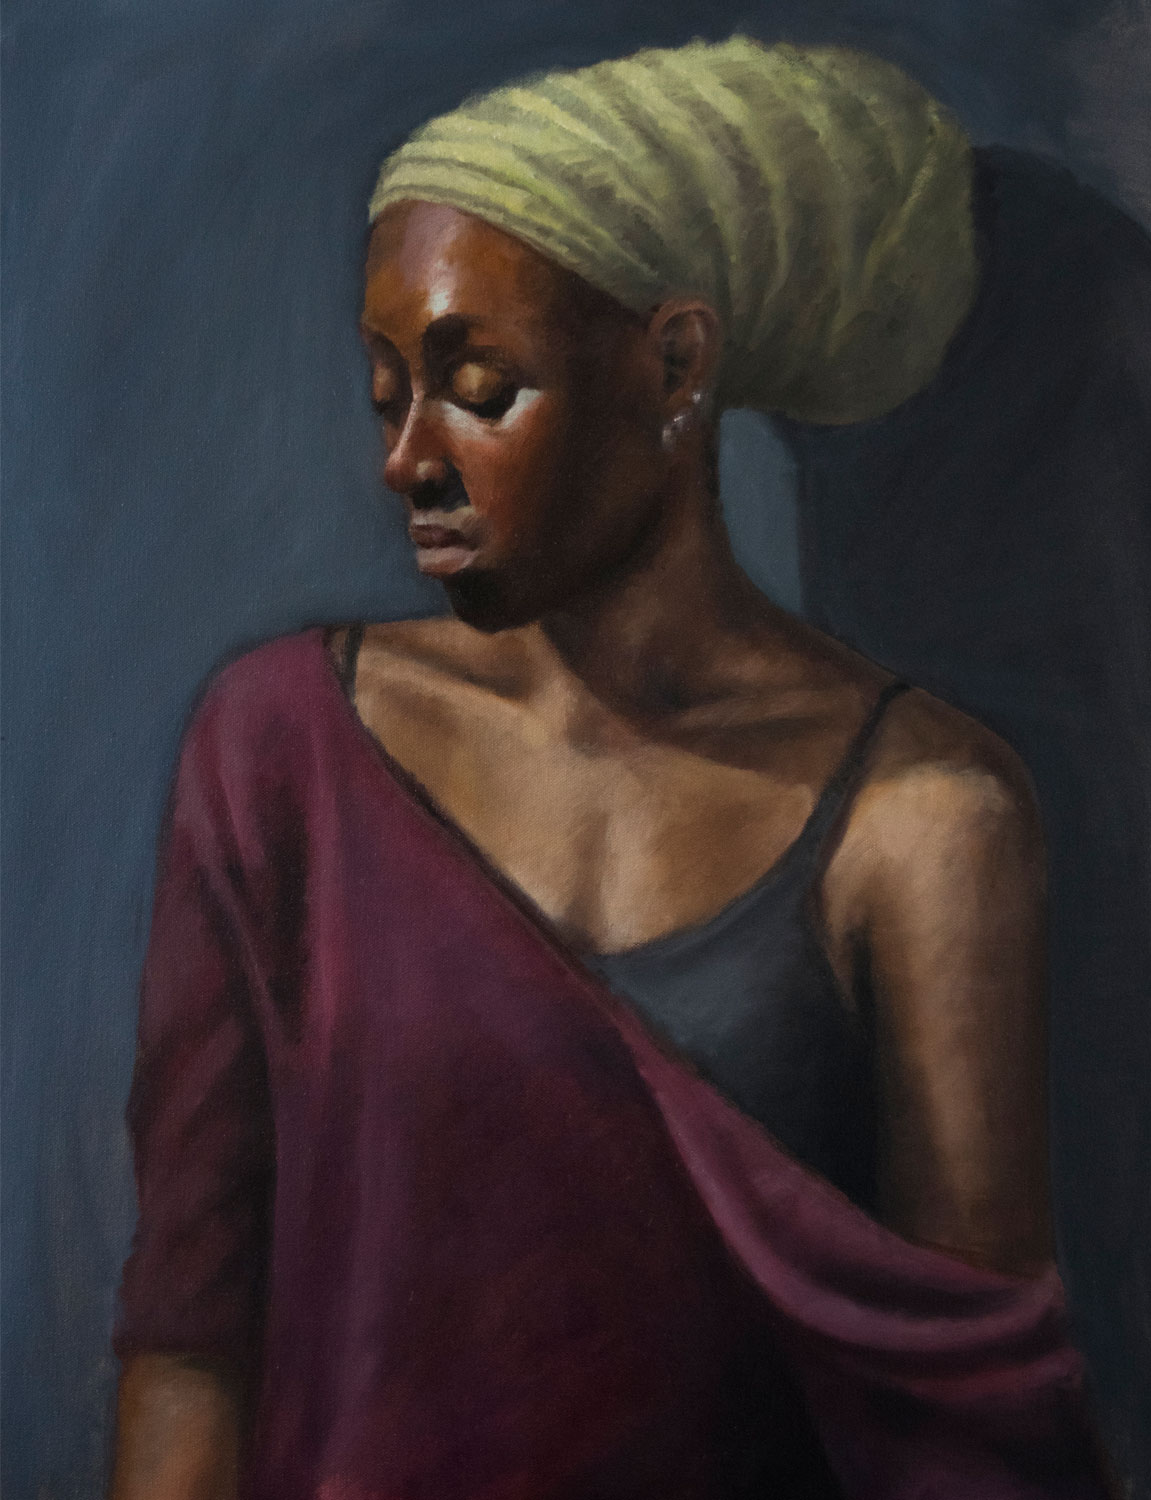 2016, Portrait study.   Oil on canvas, 18 x 24 in. (46 x 61cm.)